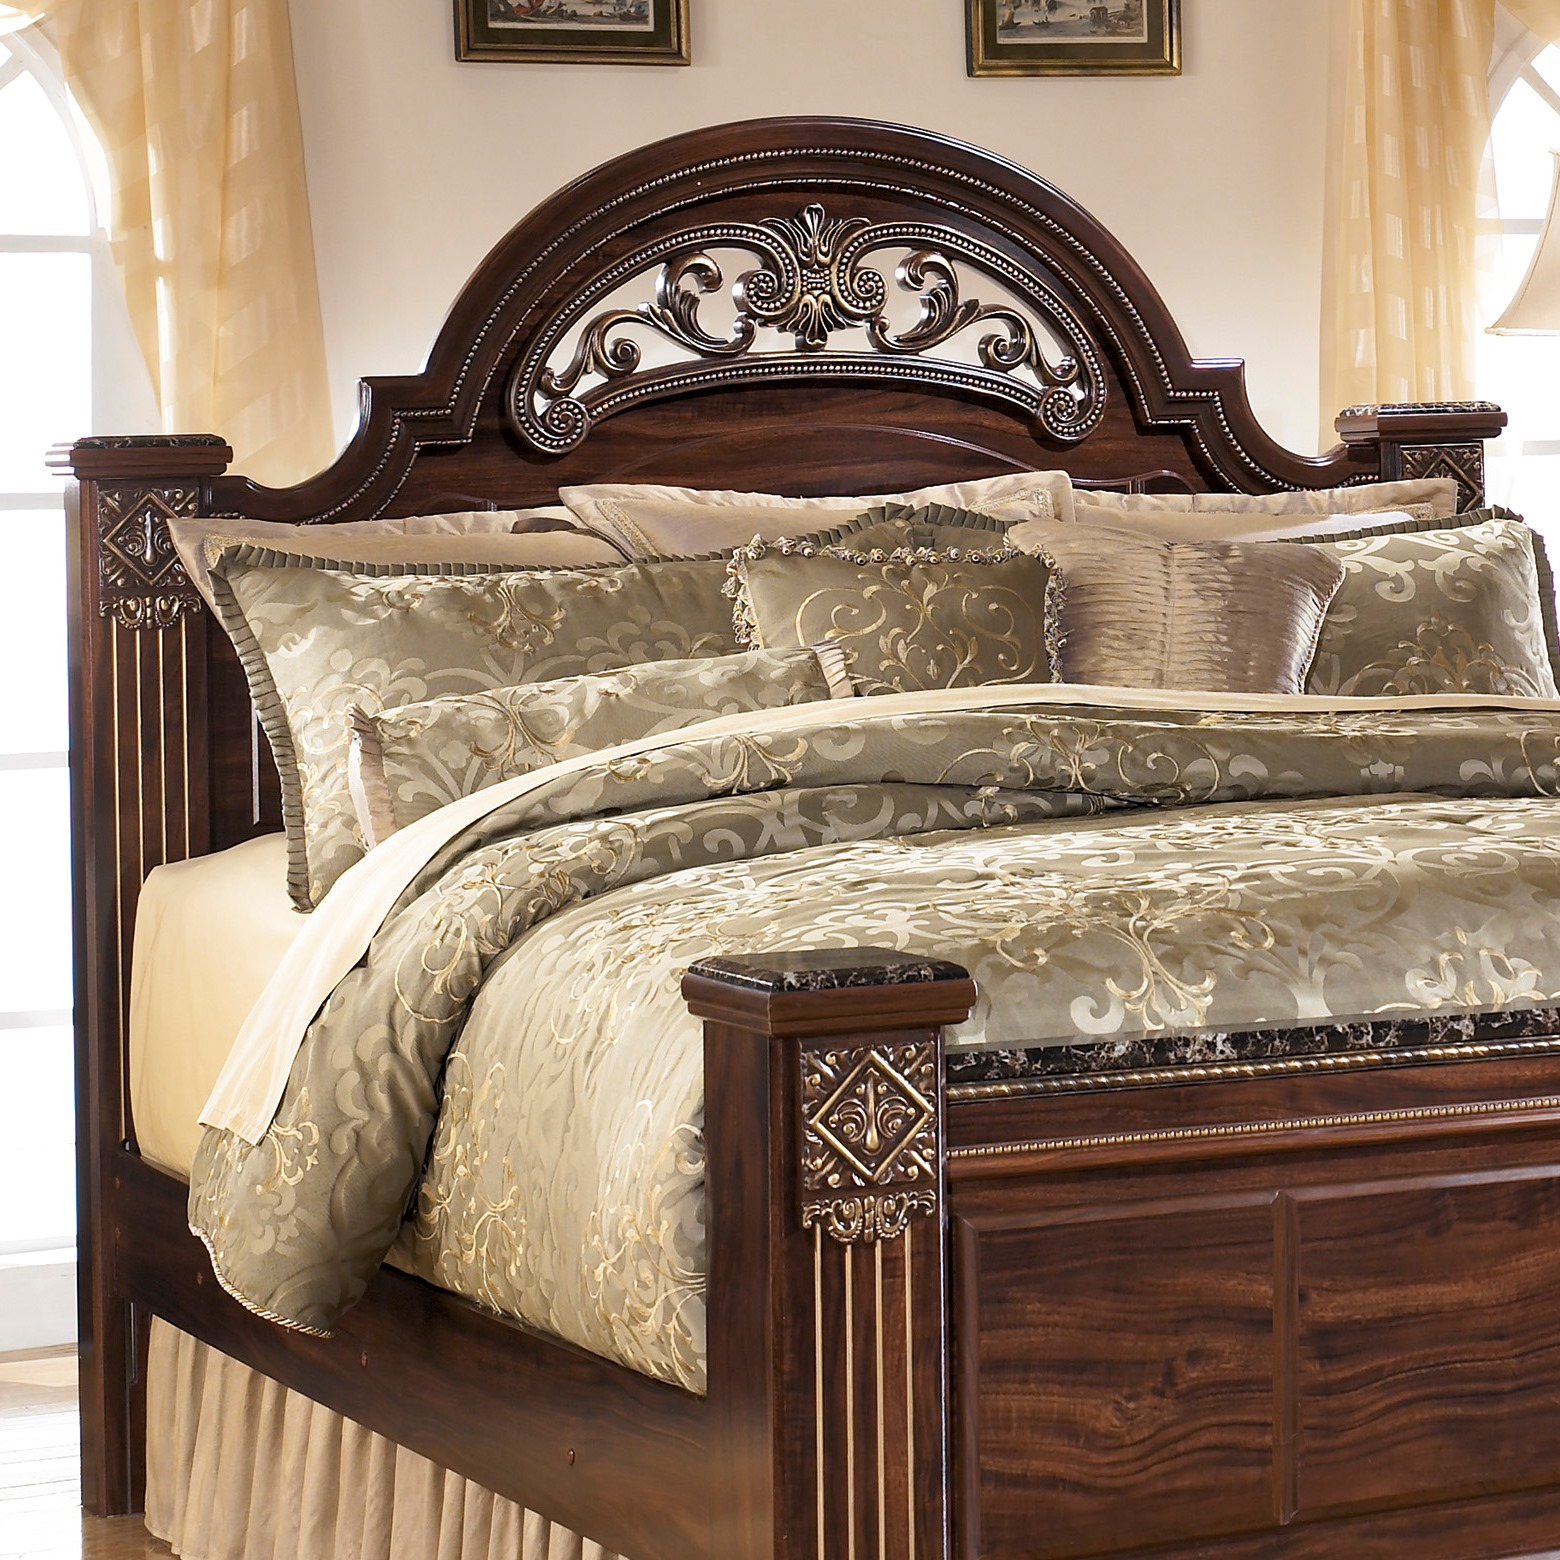 King size headboard to enhance your bedroom decor for King bed decoration